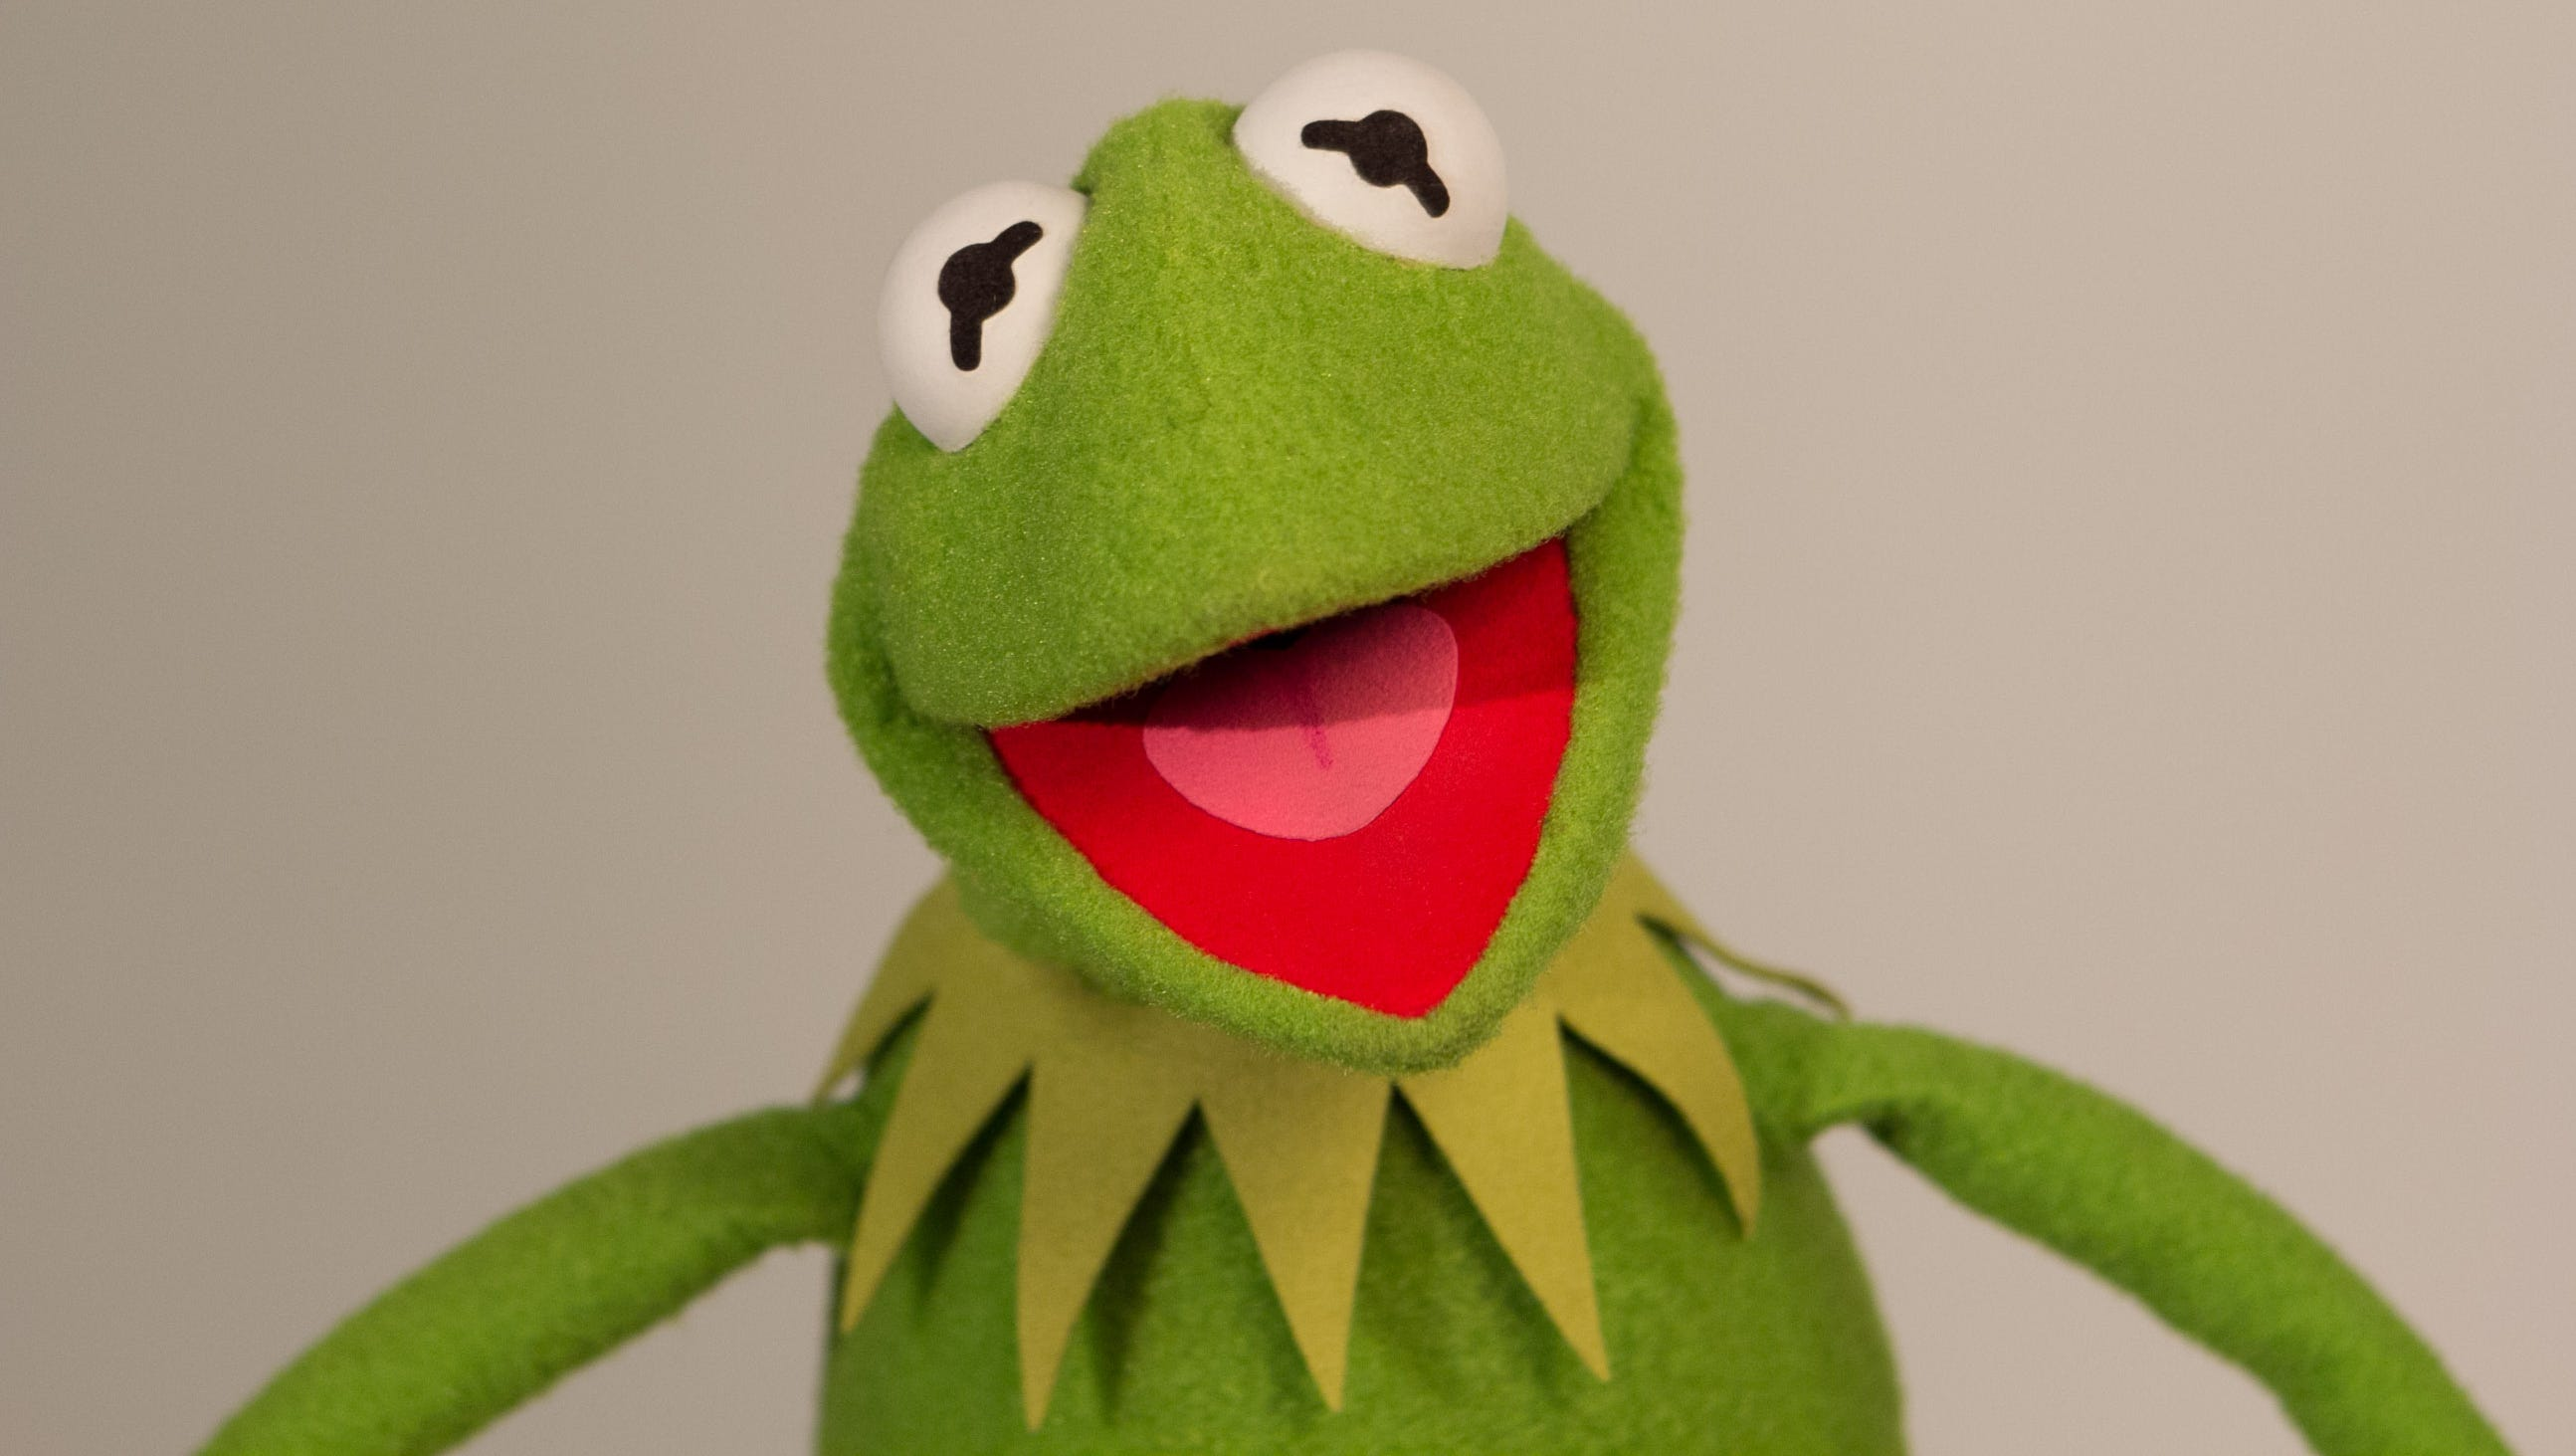 Kermit the Frog's new voice sounds a lot like old Kermit